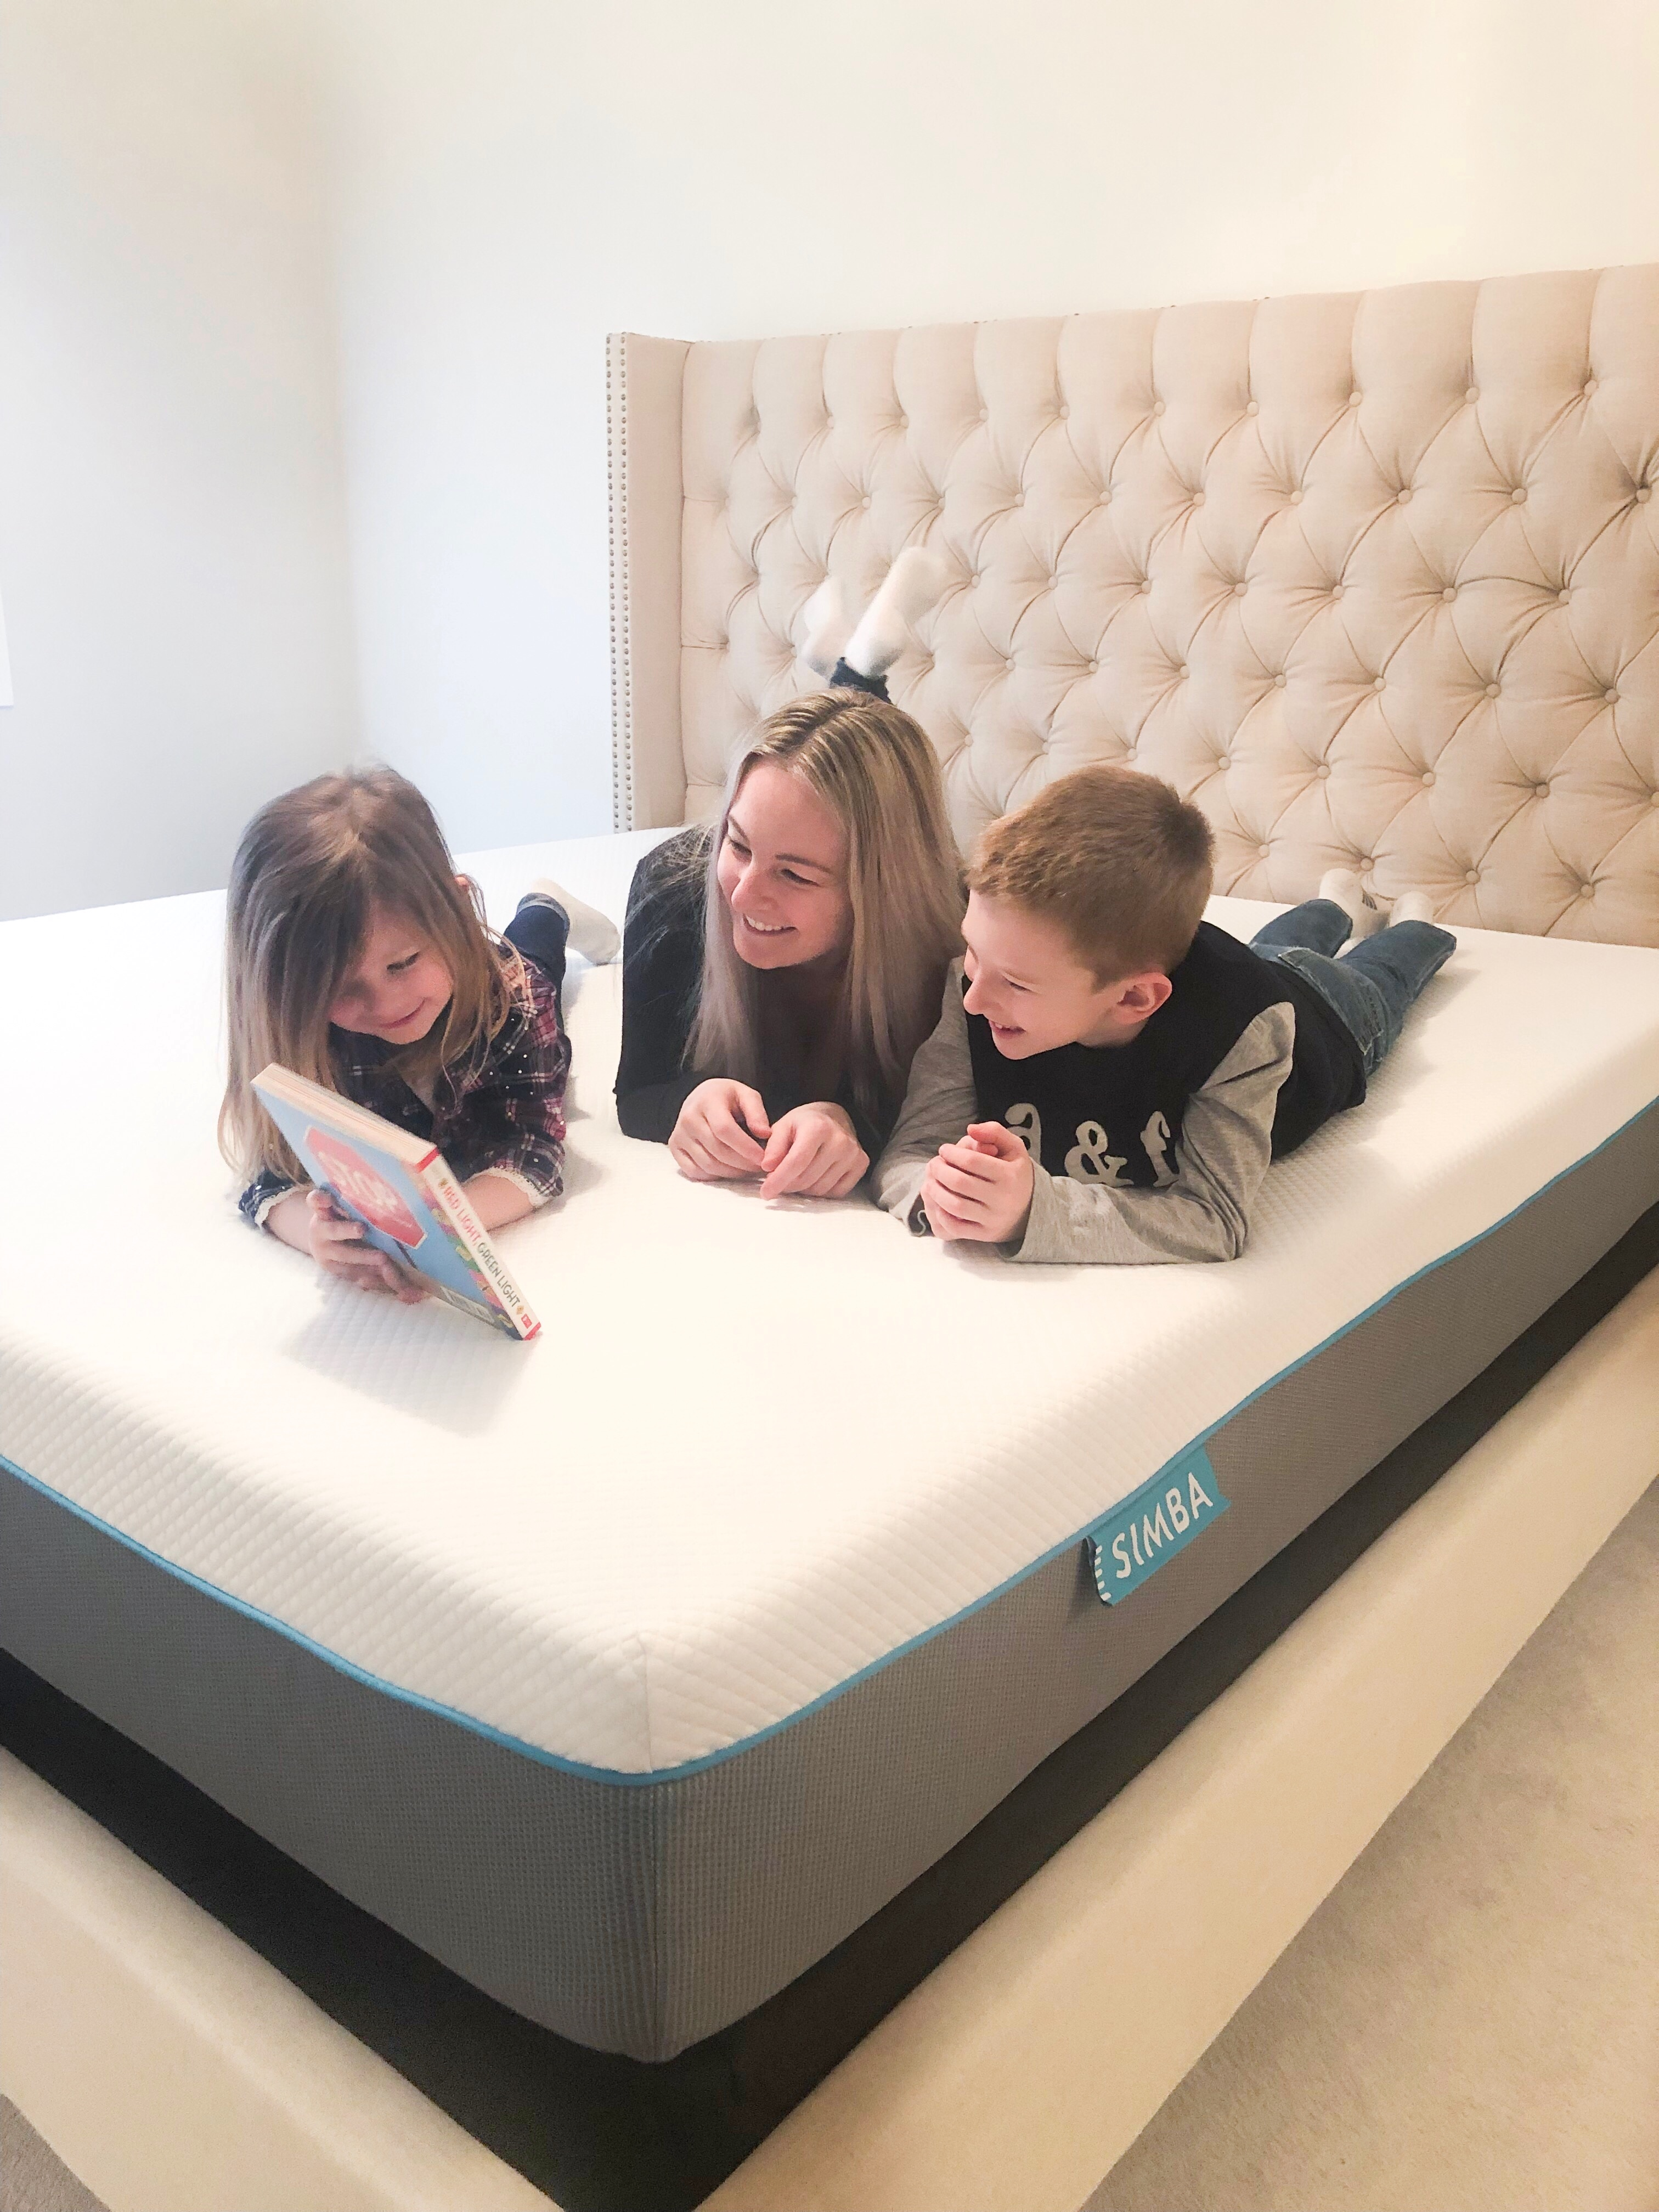 Simba Mattress Review on Livin' Life with Style